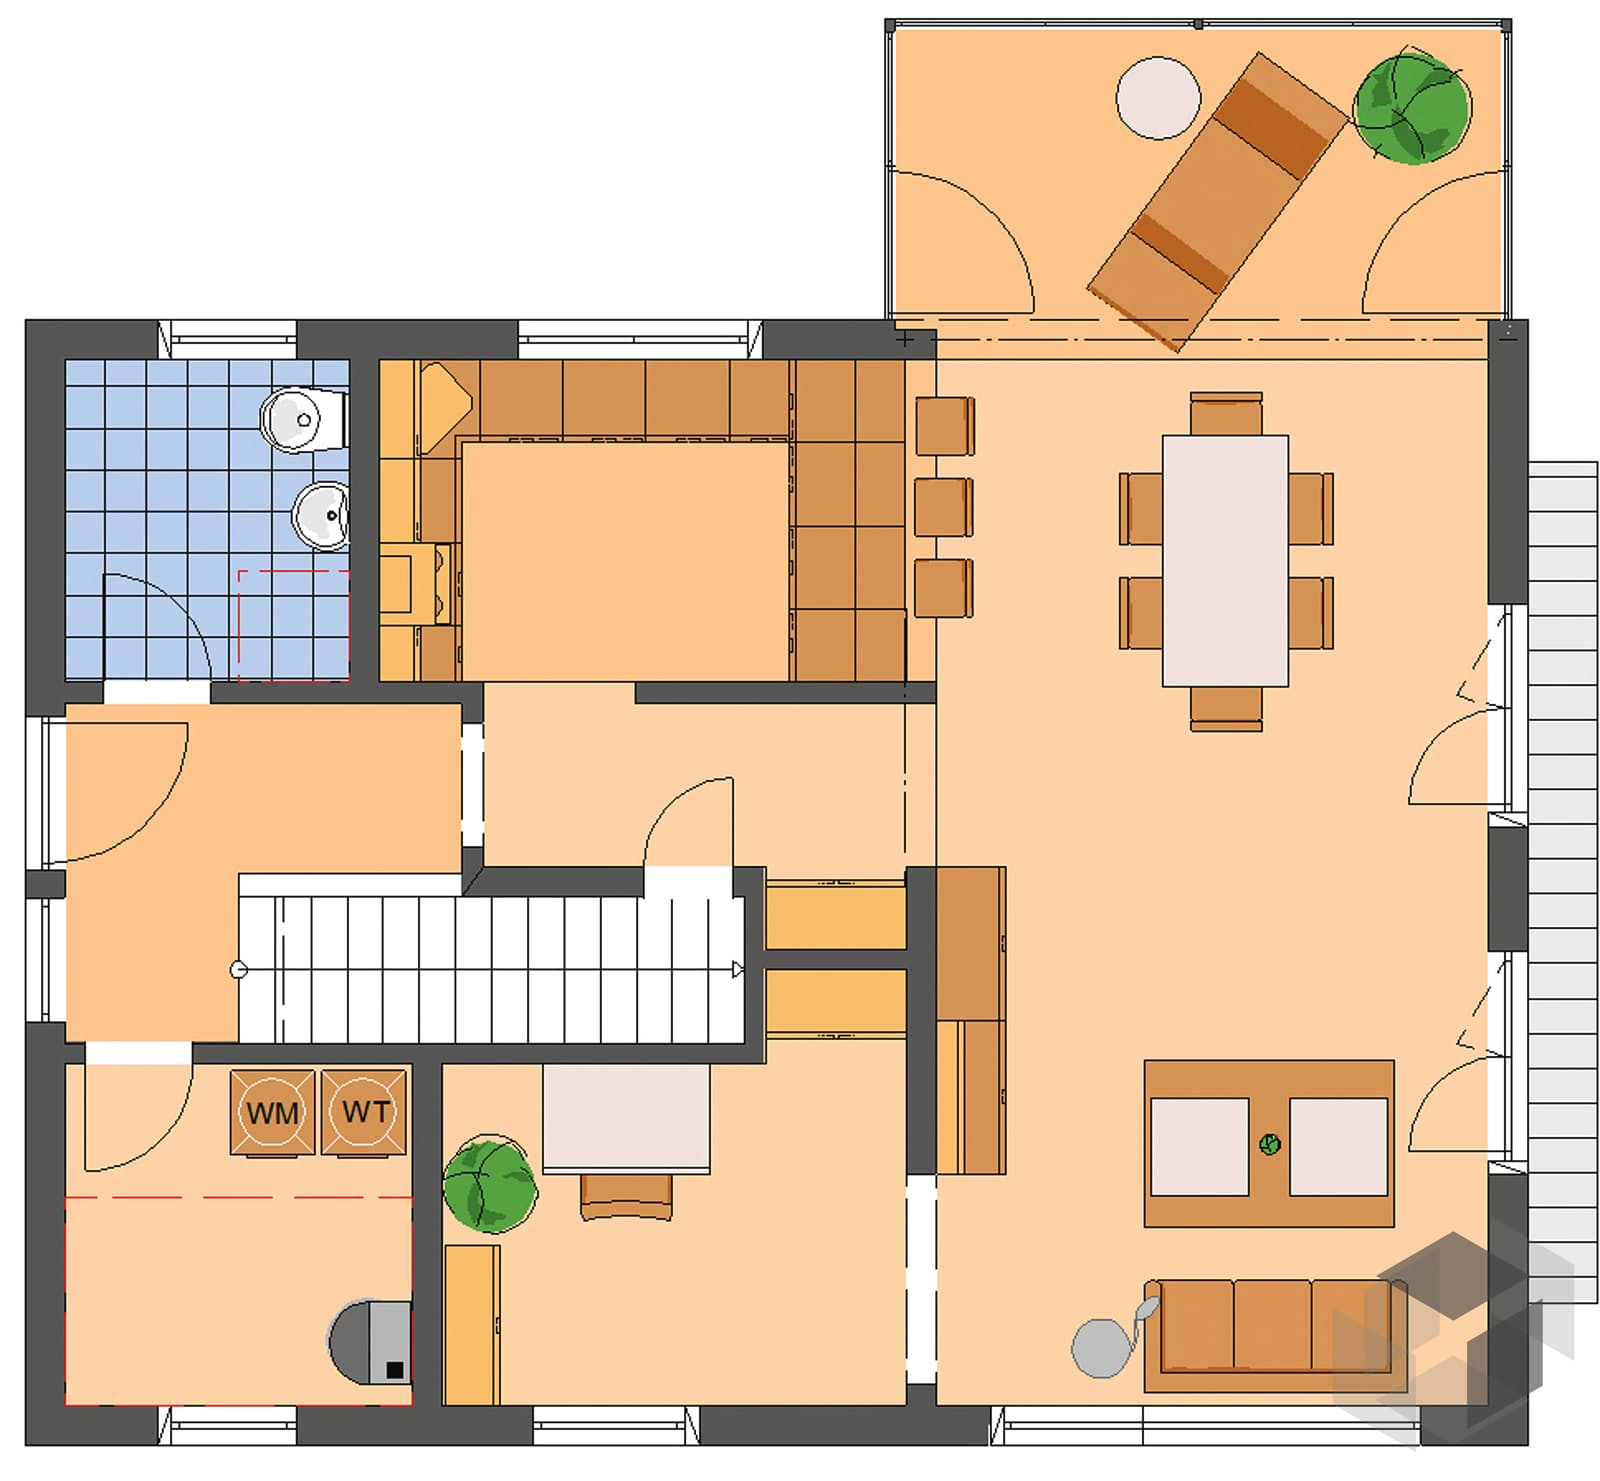 Neo 312 musterhaus wuppertal aktionshaus inactive von for Floor plans for 160 000